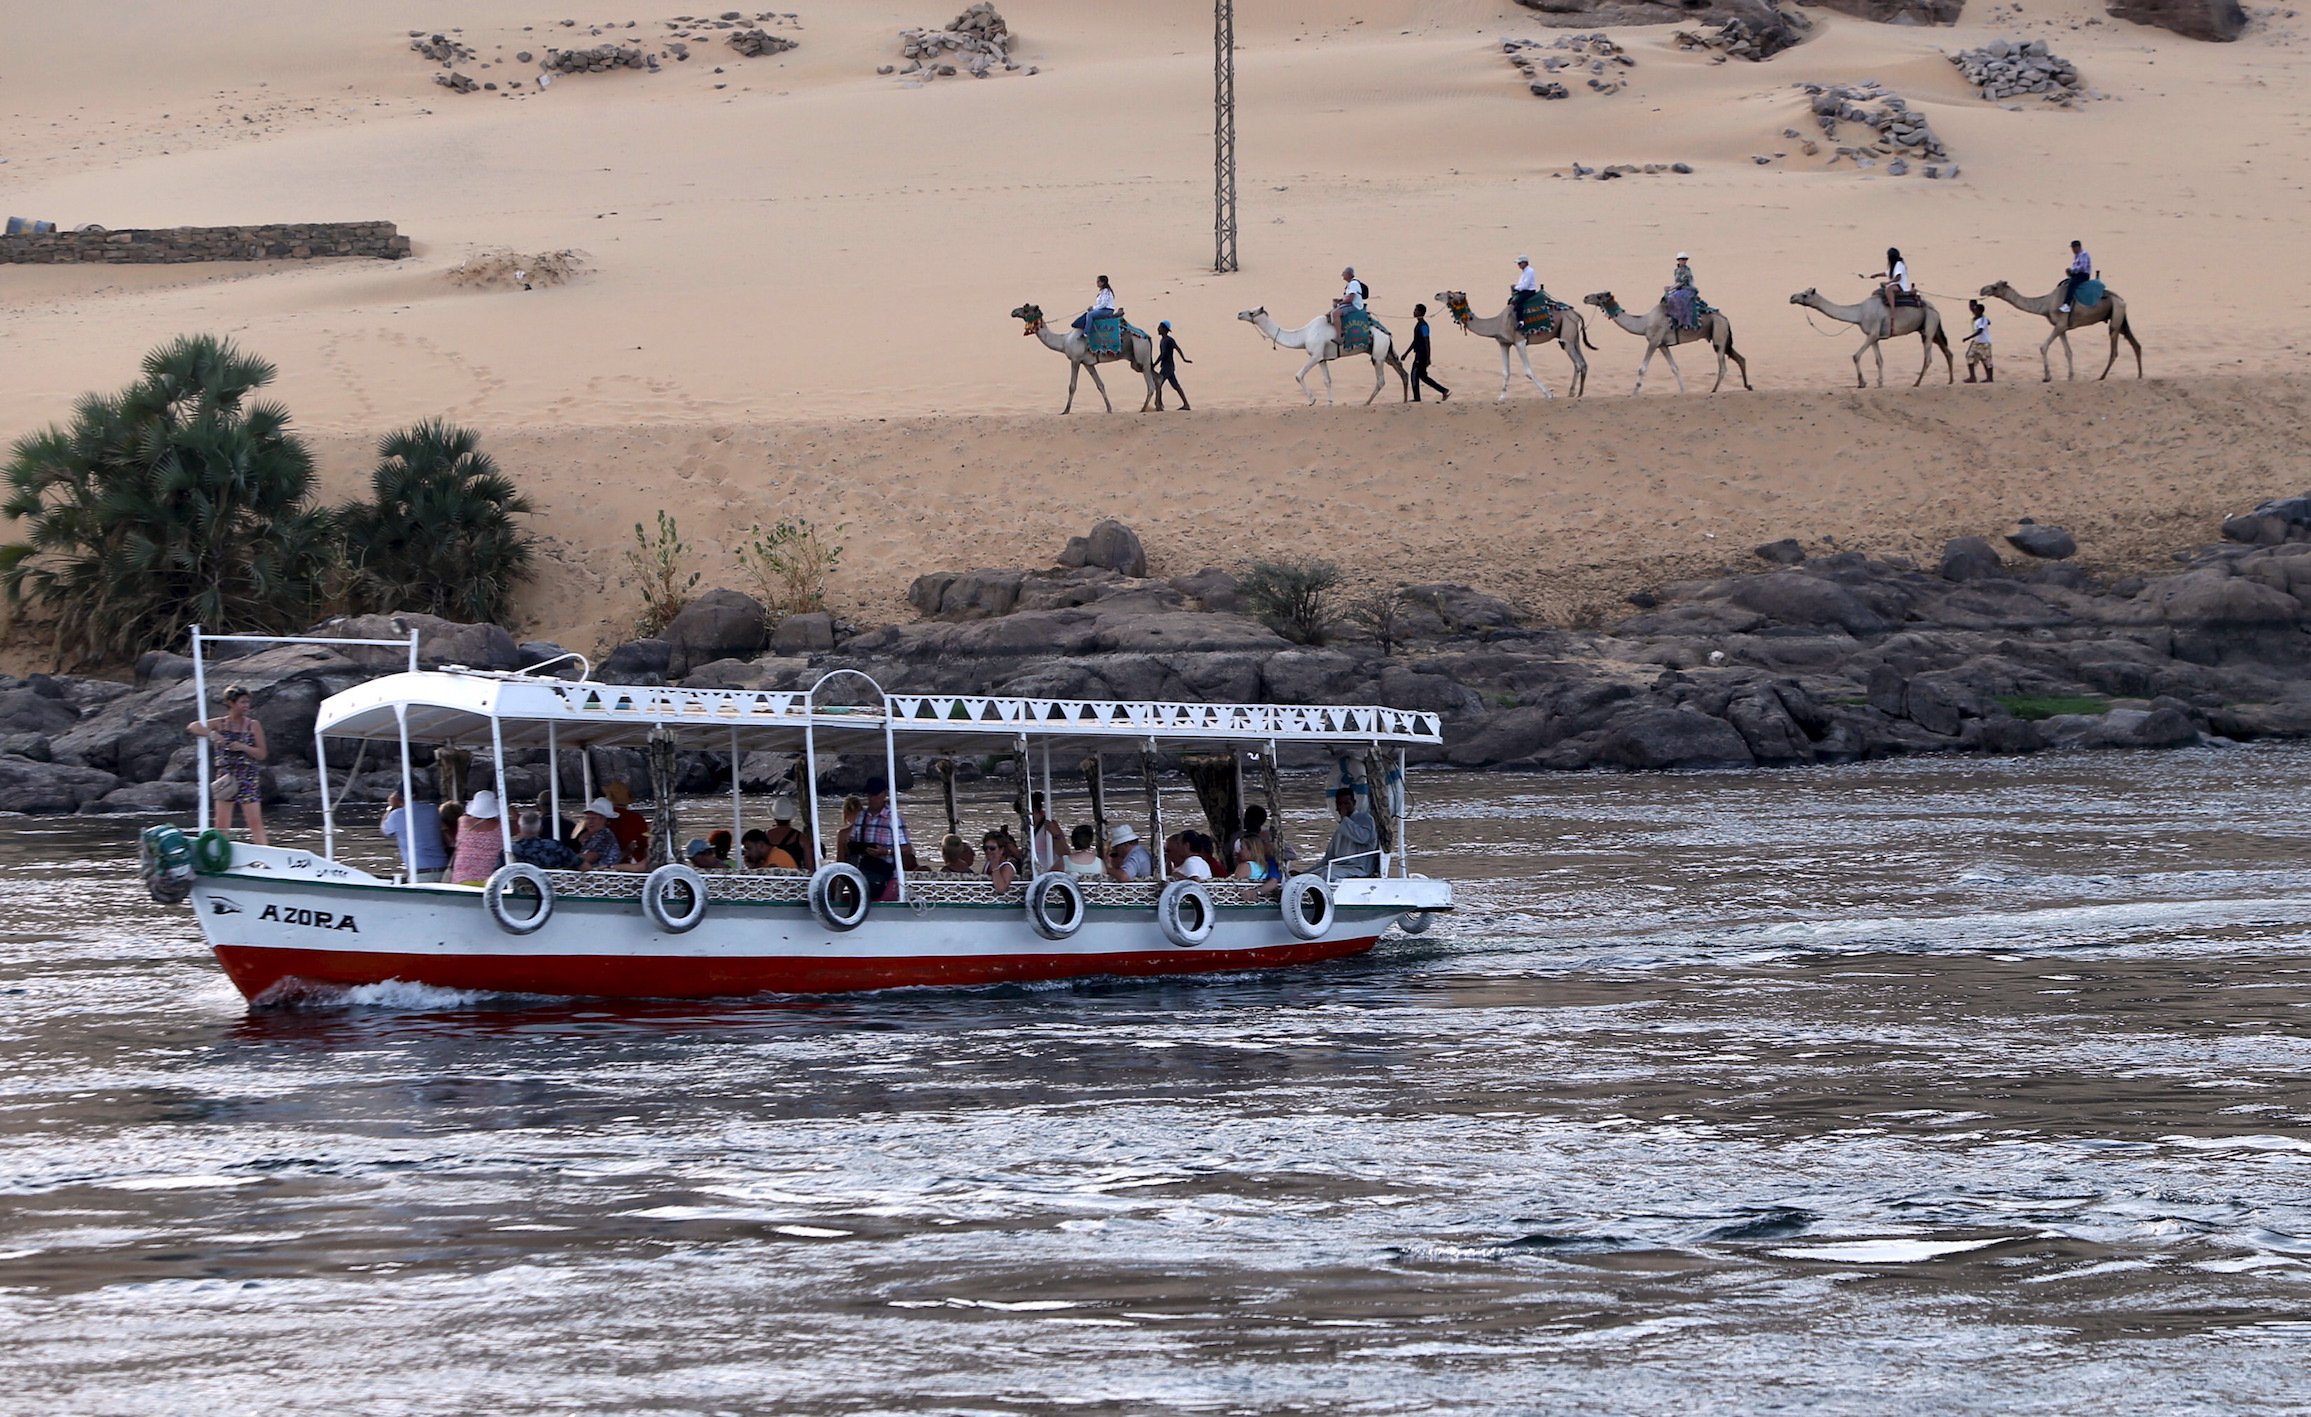 Tourists ride in a falluka (small boat) along the Nile river in Aswan on the way to Nubia, in southern Egypt.